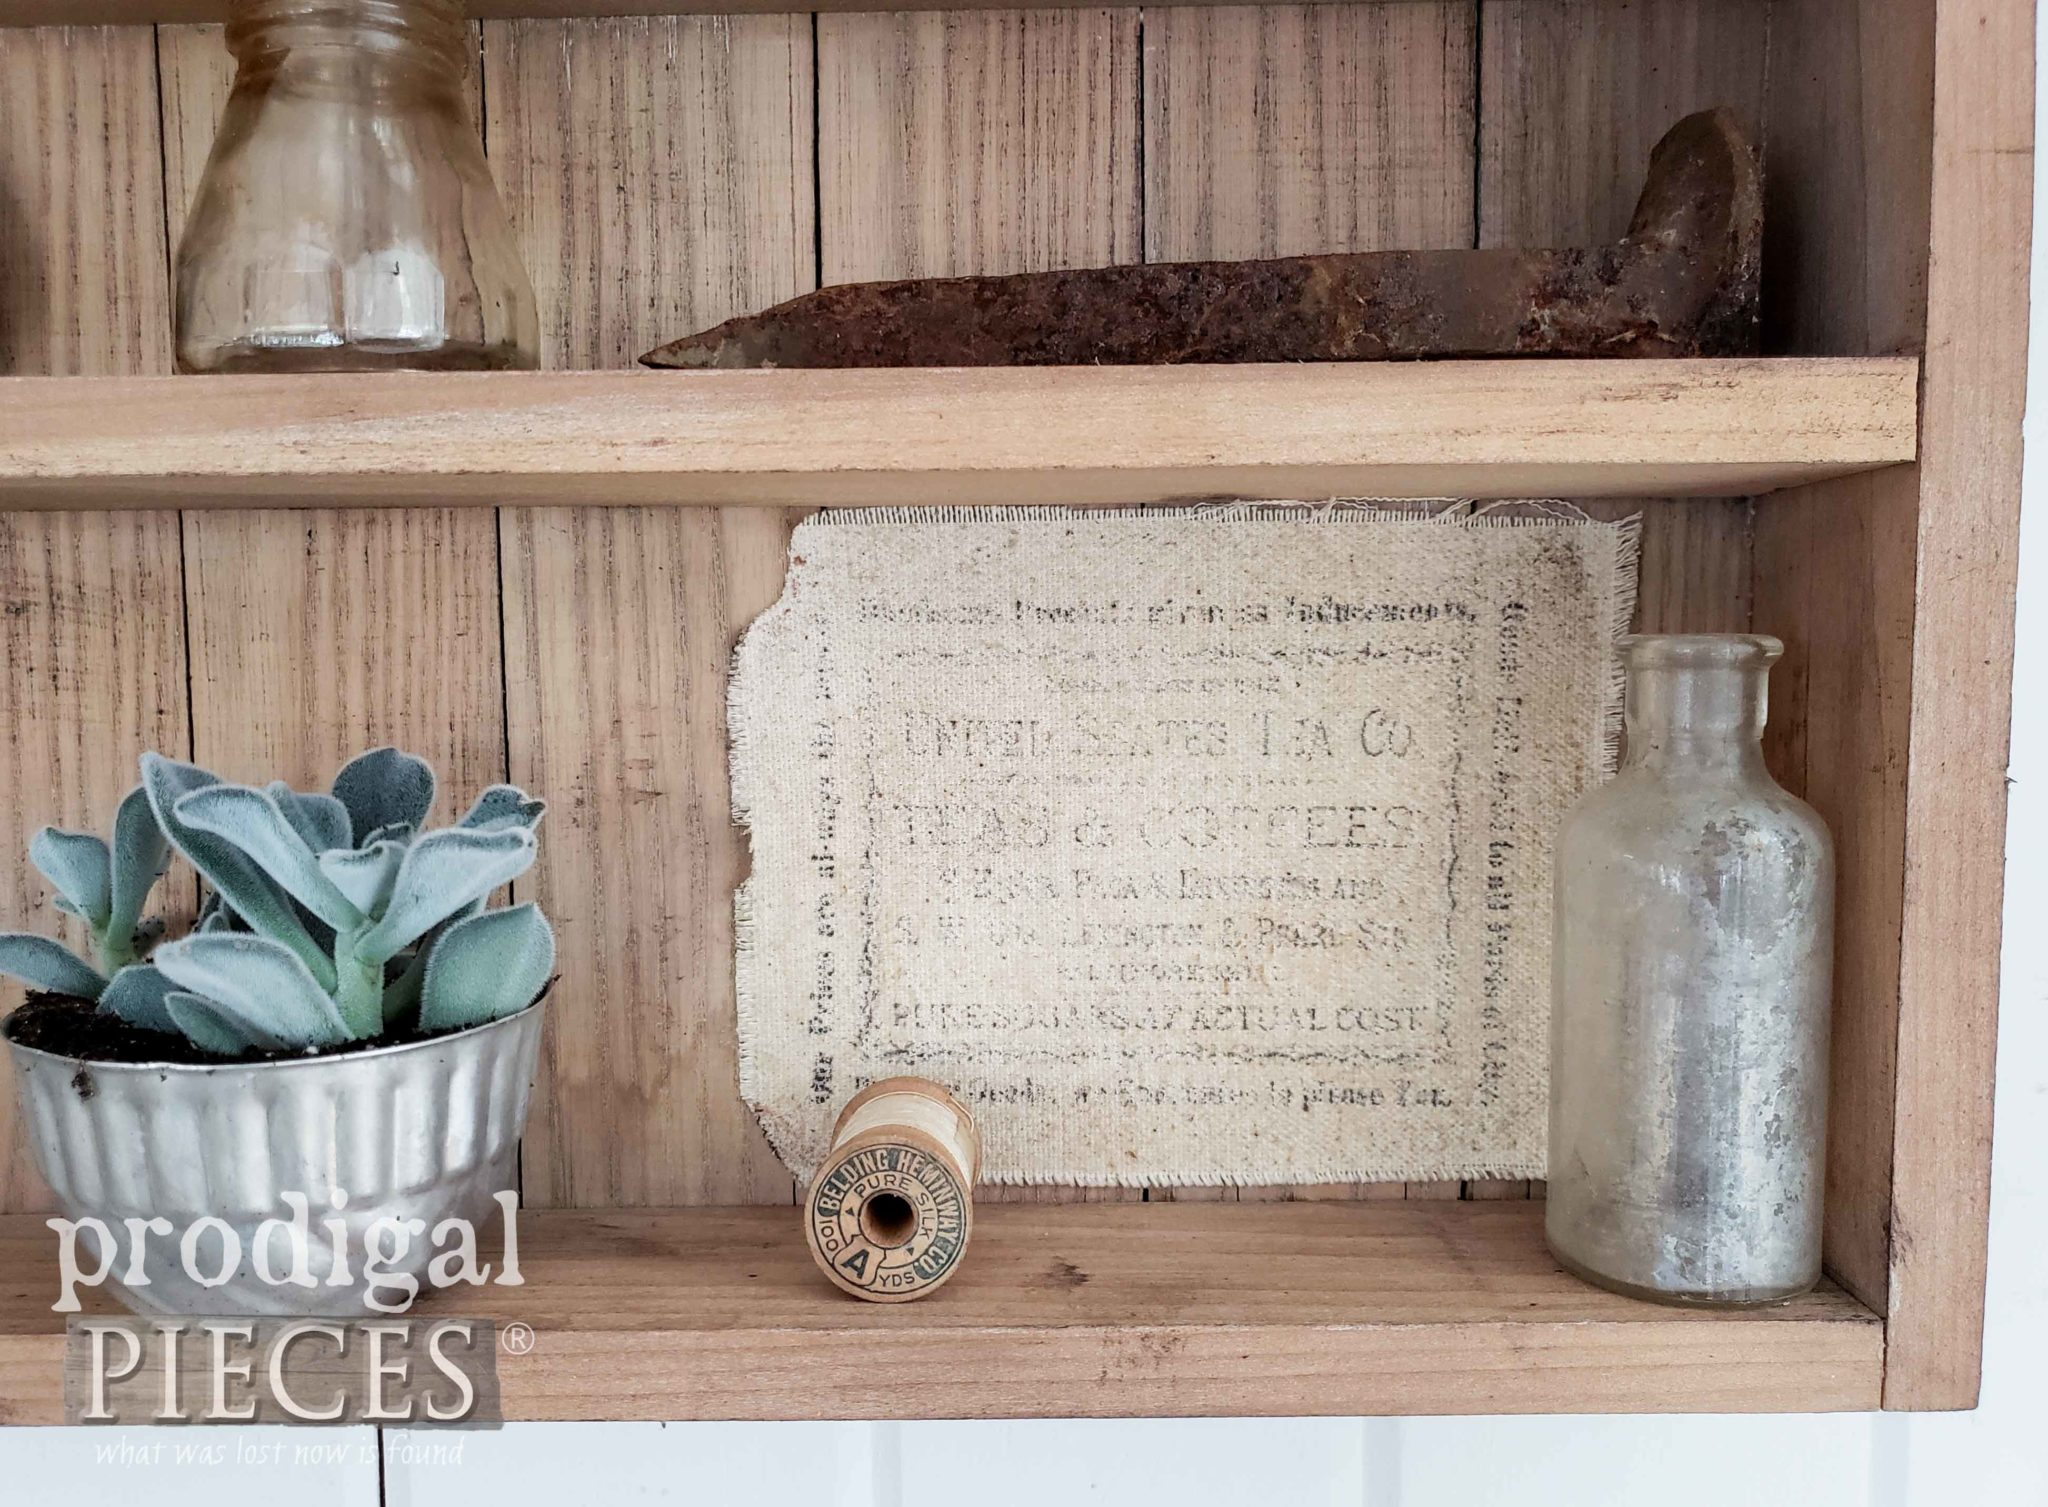 DIY Apothecary Label with Clipart from The Graphics Fairy by Larissa of Prodigal Pieces | prodigalpieces.com #prodigalpieces #diy #farmhouse #homedecor